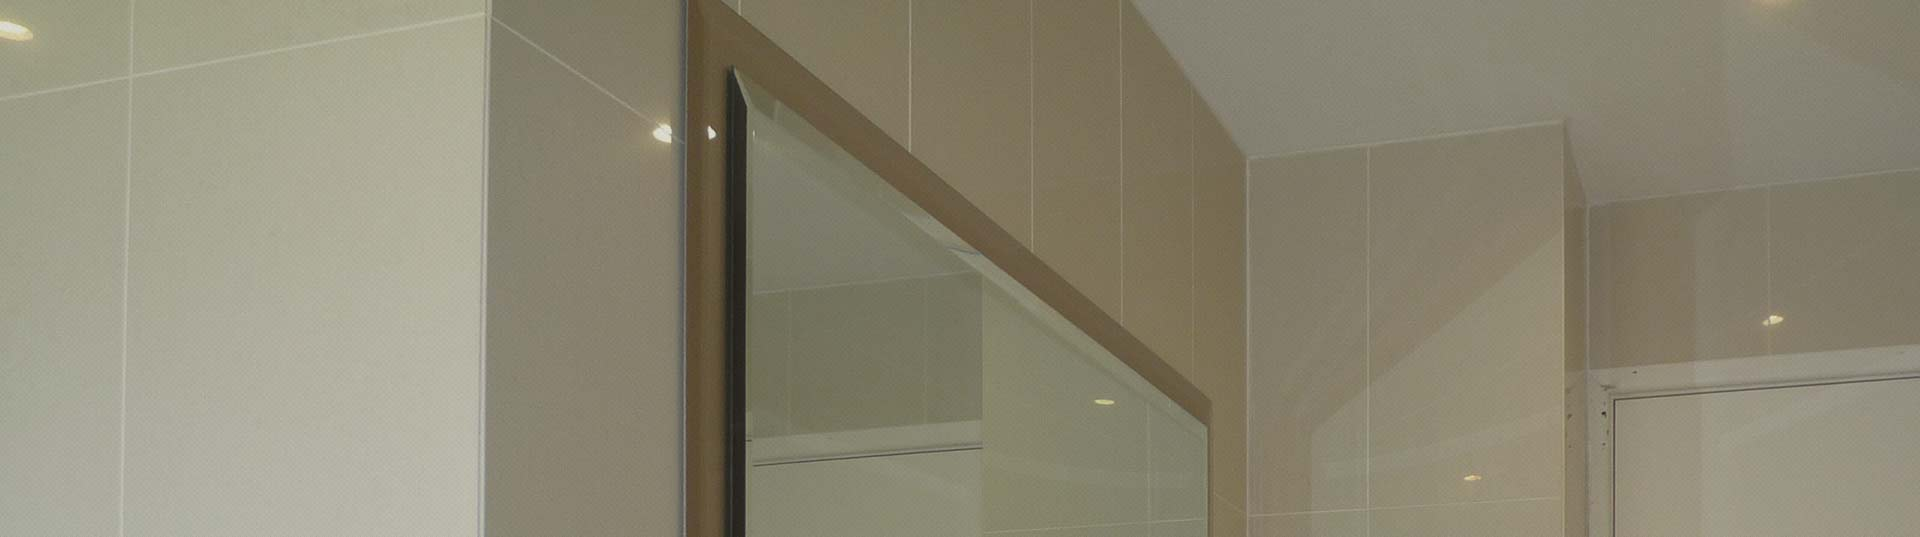 Mirrors Custom Cut By Palmers Glass For Home Or Office